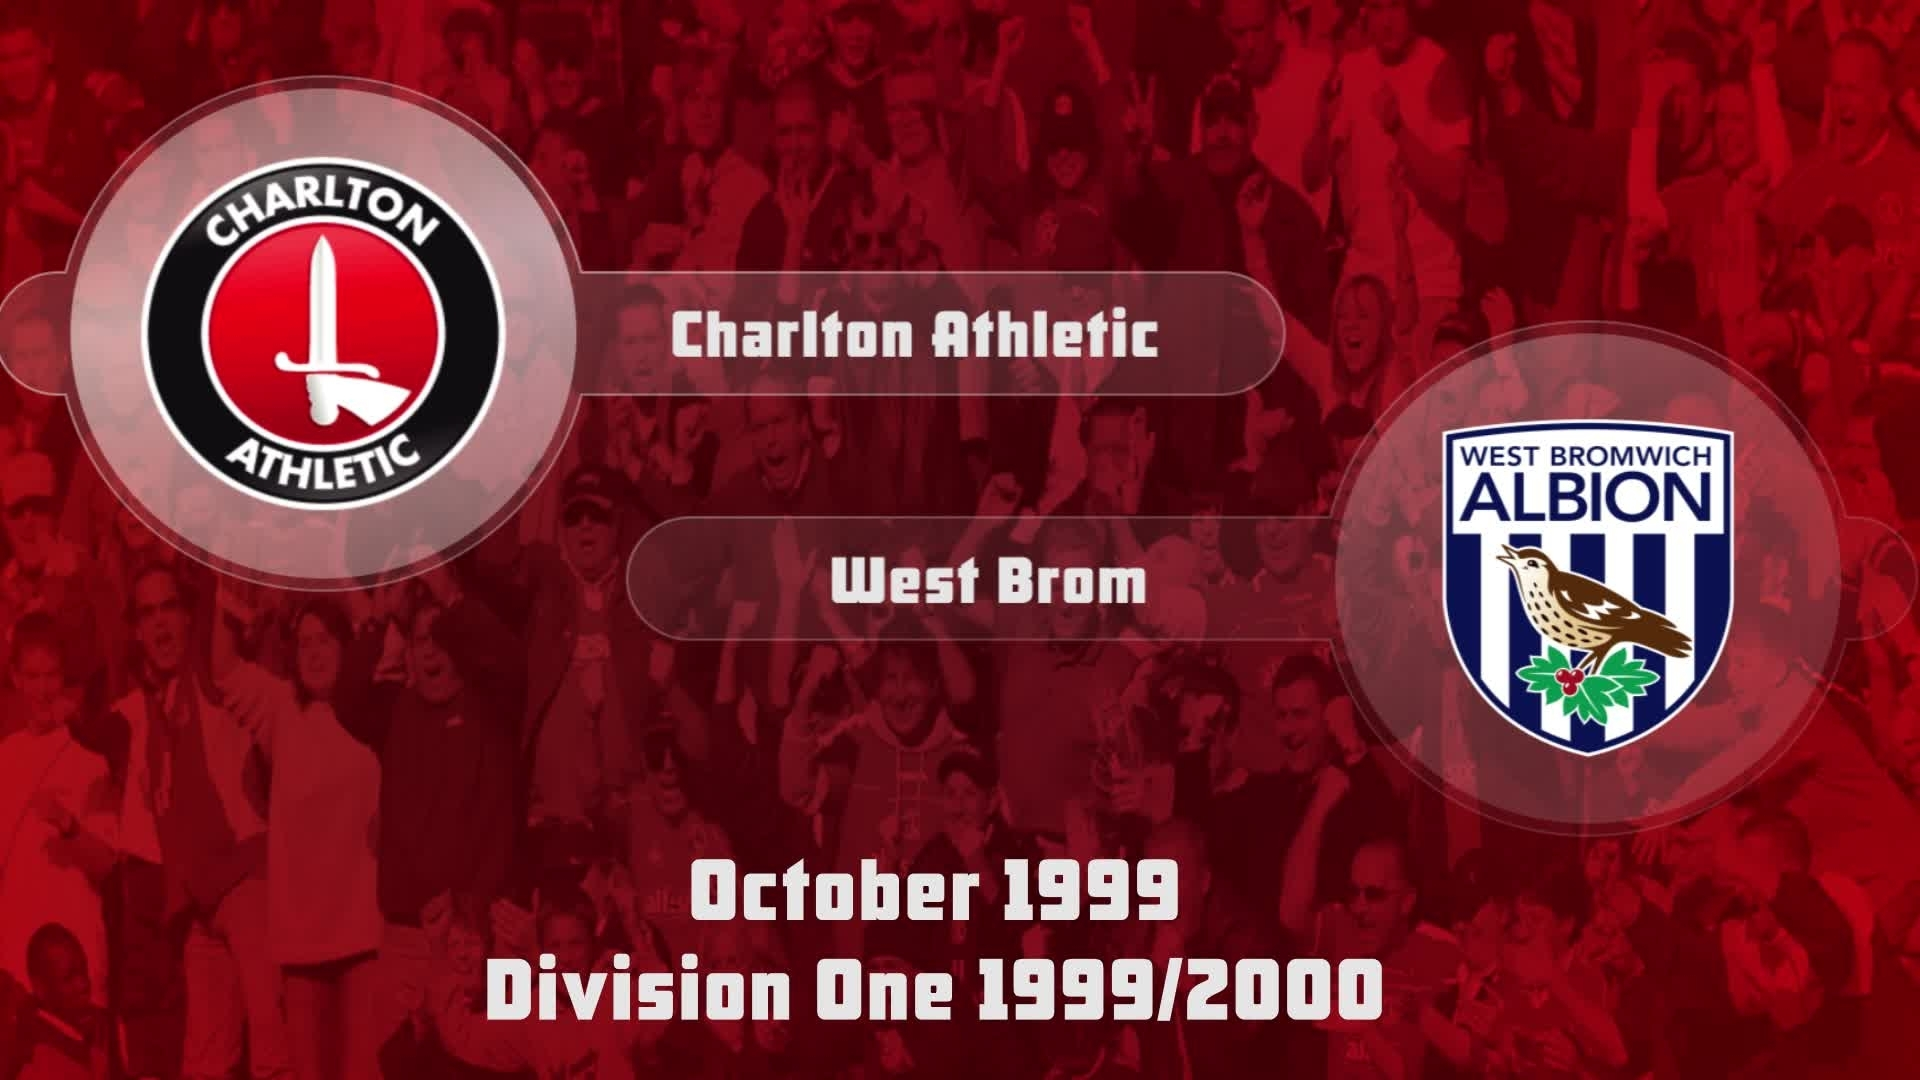 13 HIGHLIGHTS | Charlton 0 West Brom 0 (Oct 1999)